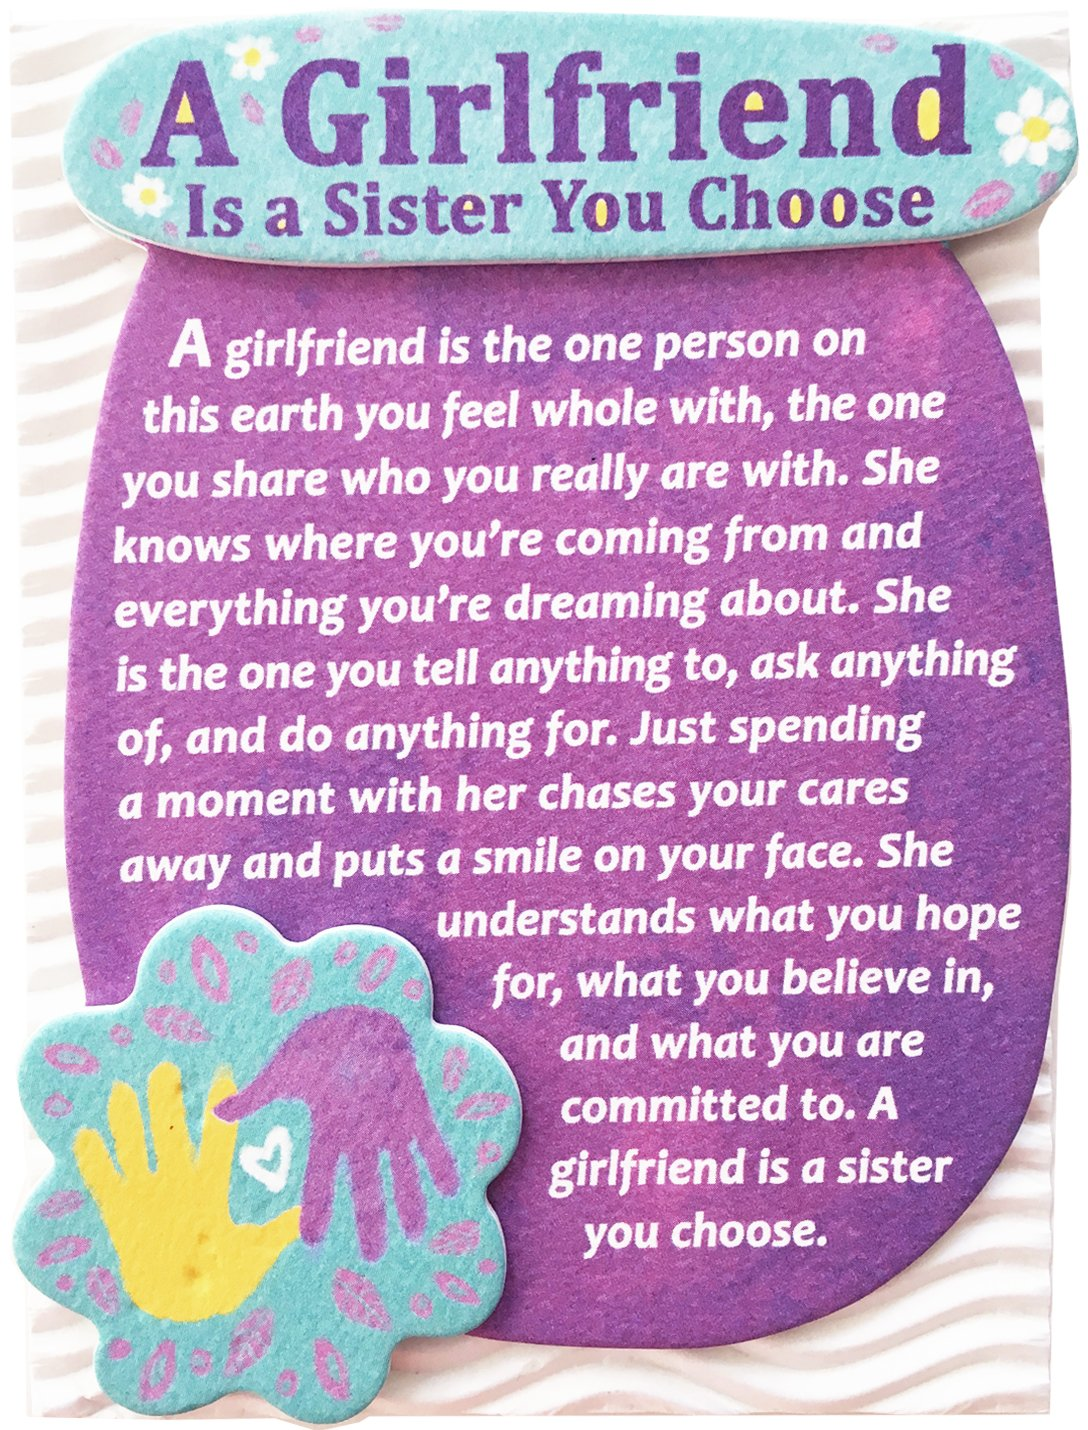 """Blue Mountain Arts Miniature Easel Print with Magnet """"A Girlfriend Is a Sister You Choose"""" 4.9 x 3.6 in., Perfect Birthday, """"Thinking of You,"""" Friendship, or """"Just Because"""" Gift for a Woman Friend"""